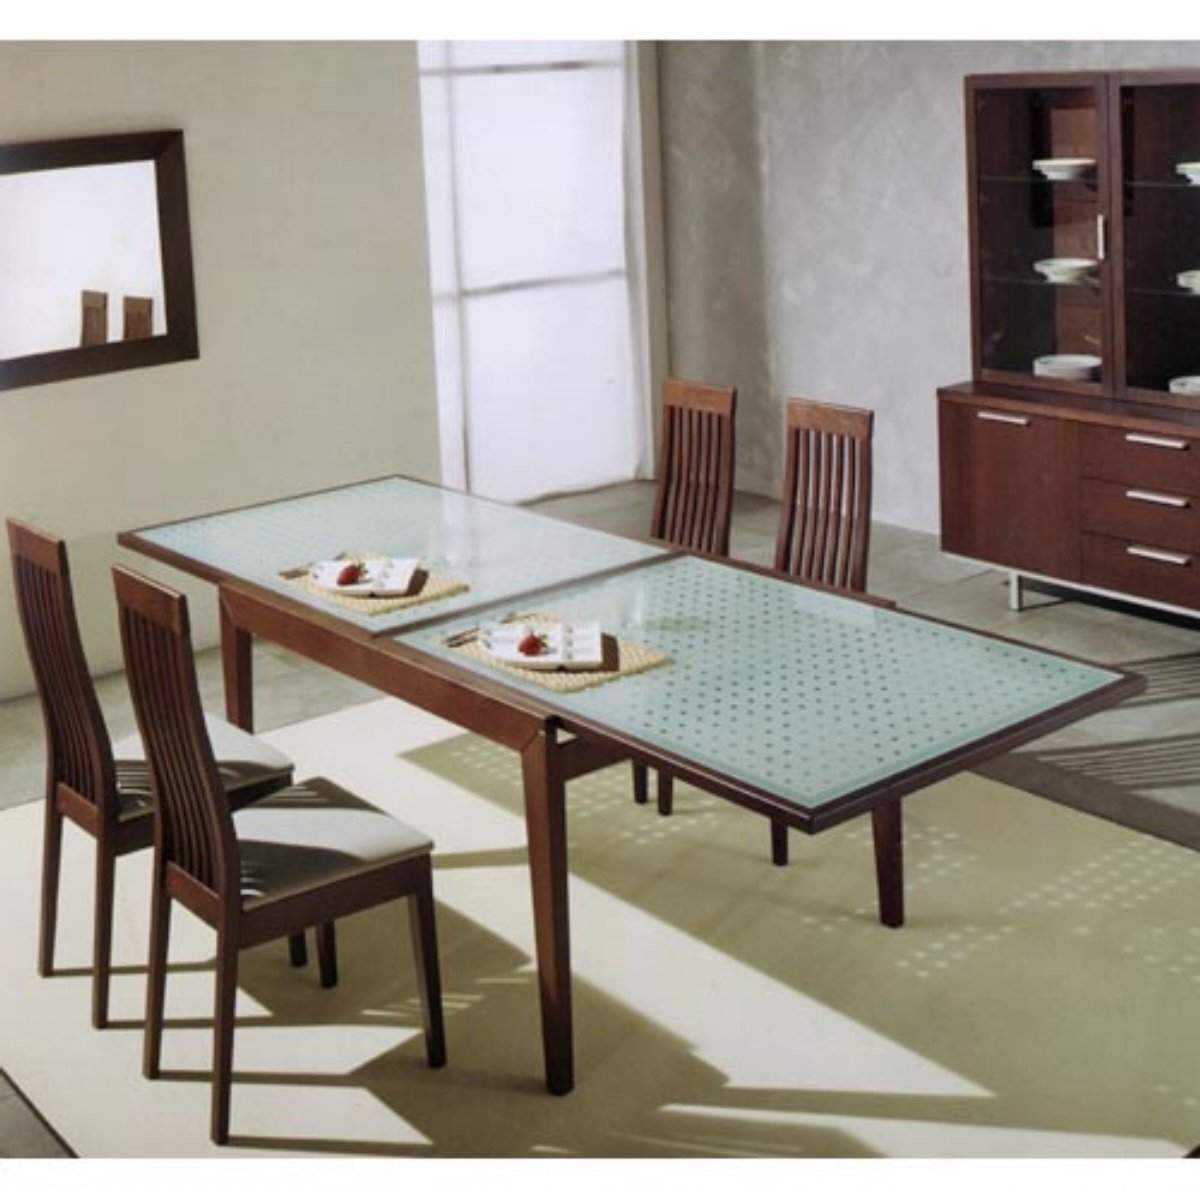 Extending Glass Dining Table Sets • Table Setting Design Regarding Well Liked Extending Glass Dining Tables (View 21 of 25)